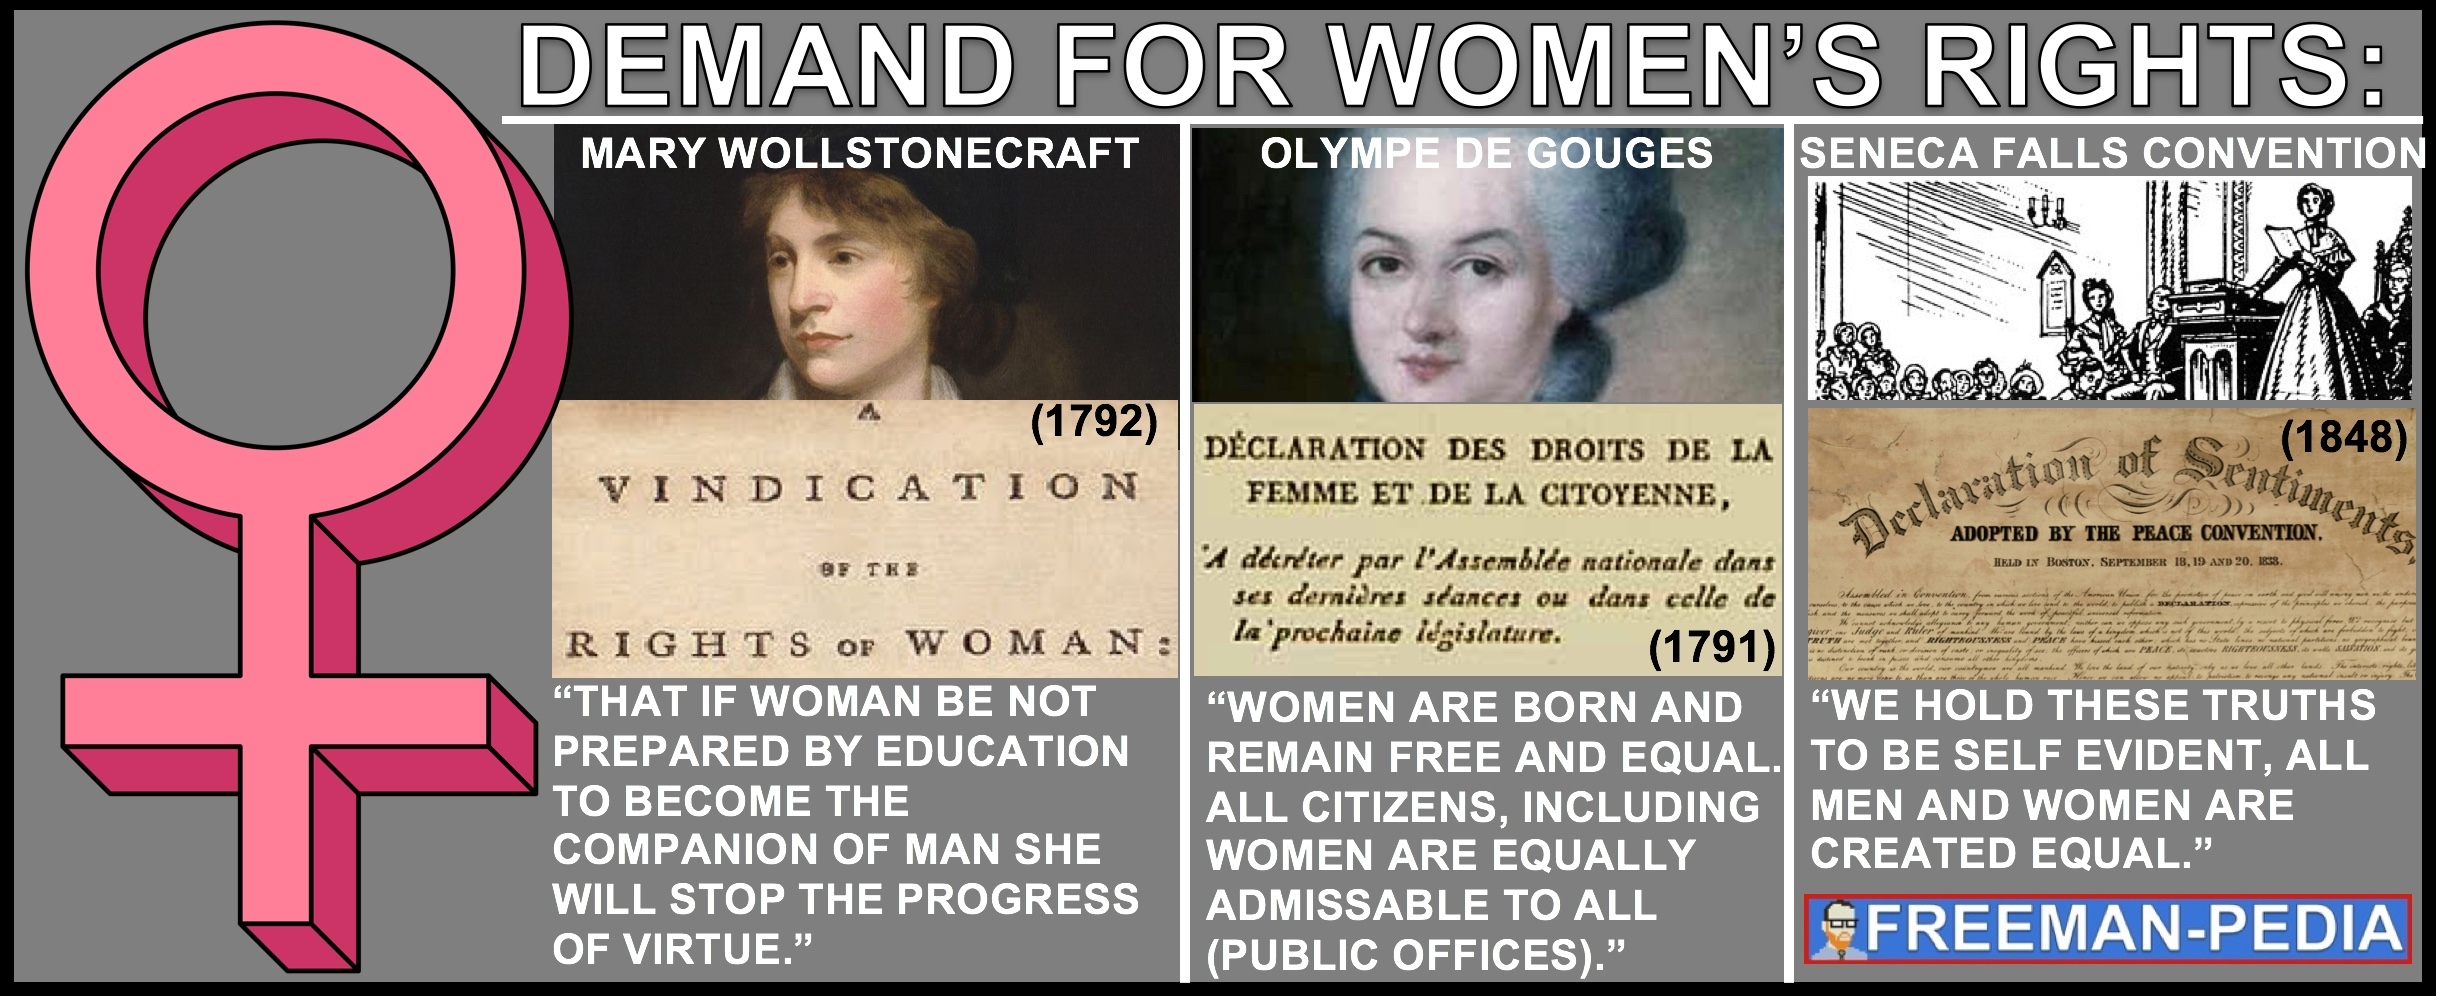 B. Demands for  women's suffrage  and an emergent feminism ( Mary Wollstonecraft's A Vindication of the Rights of Women,Olympia de Gouges's Declaration of the Rights of Women and the Female Citizen,The Resolution passed at the Seneca Falls convention in 1848)   challenged   political and gender hierarchies